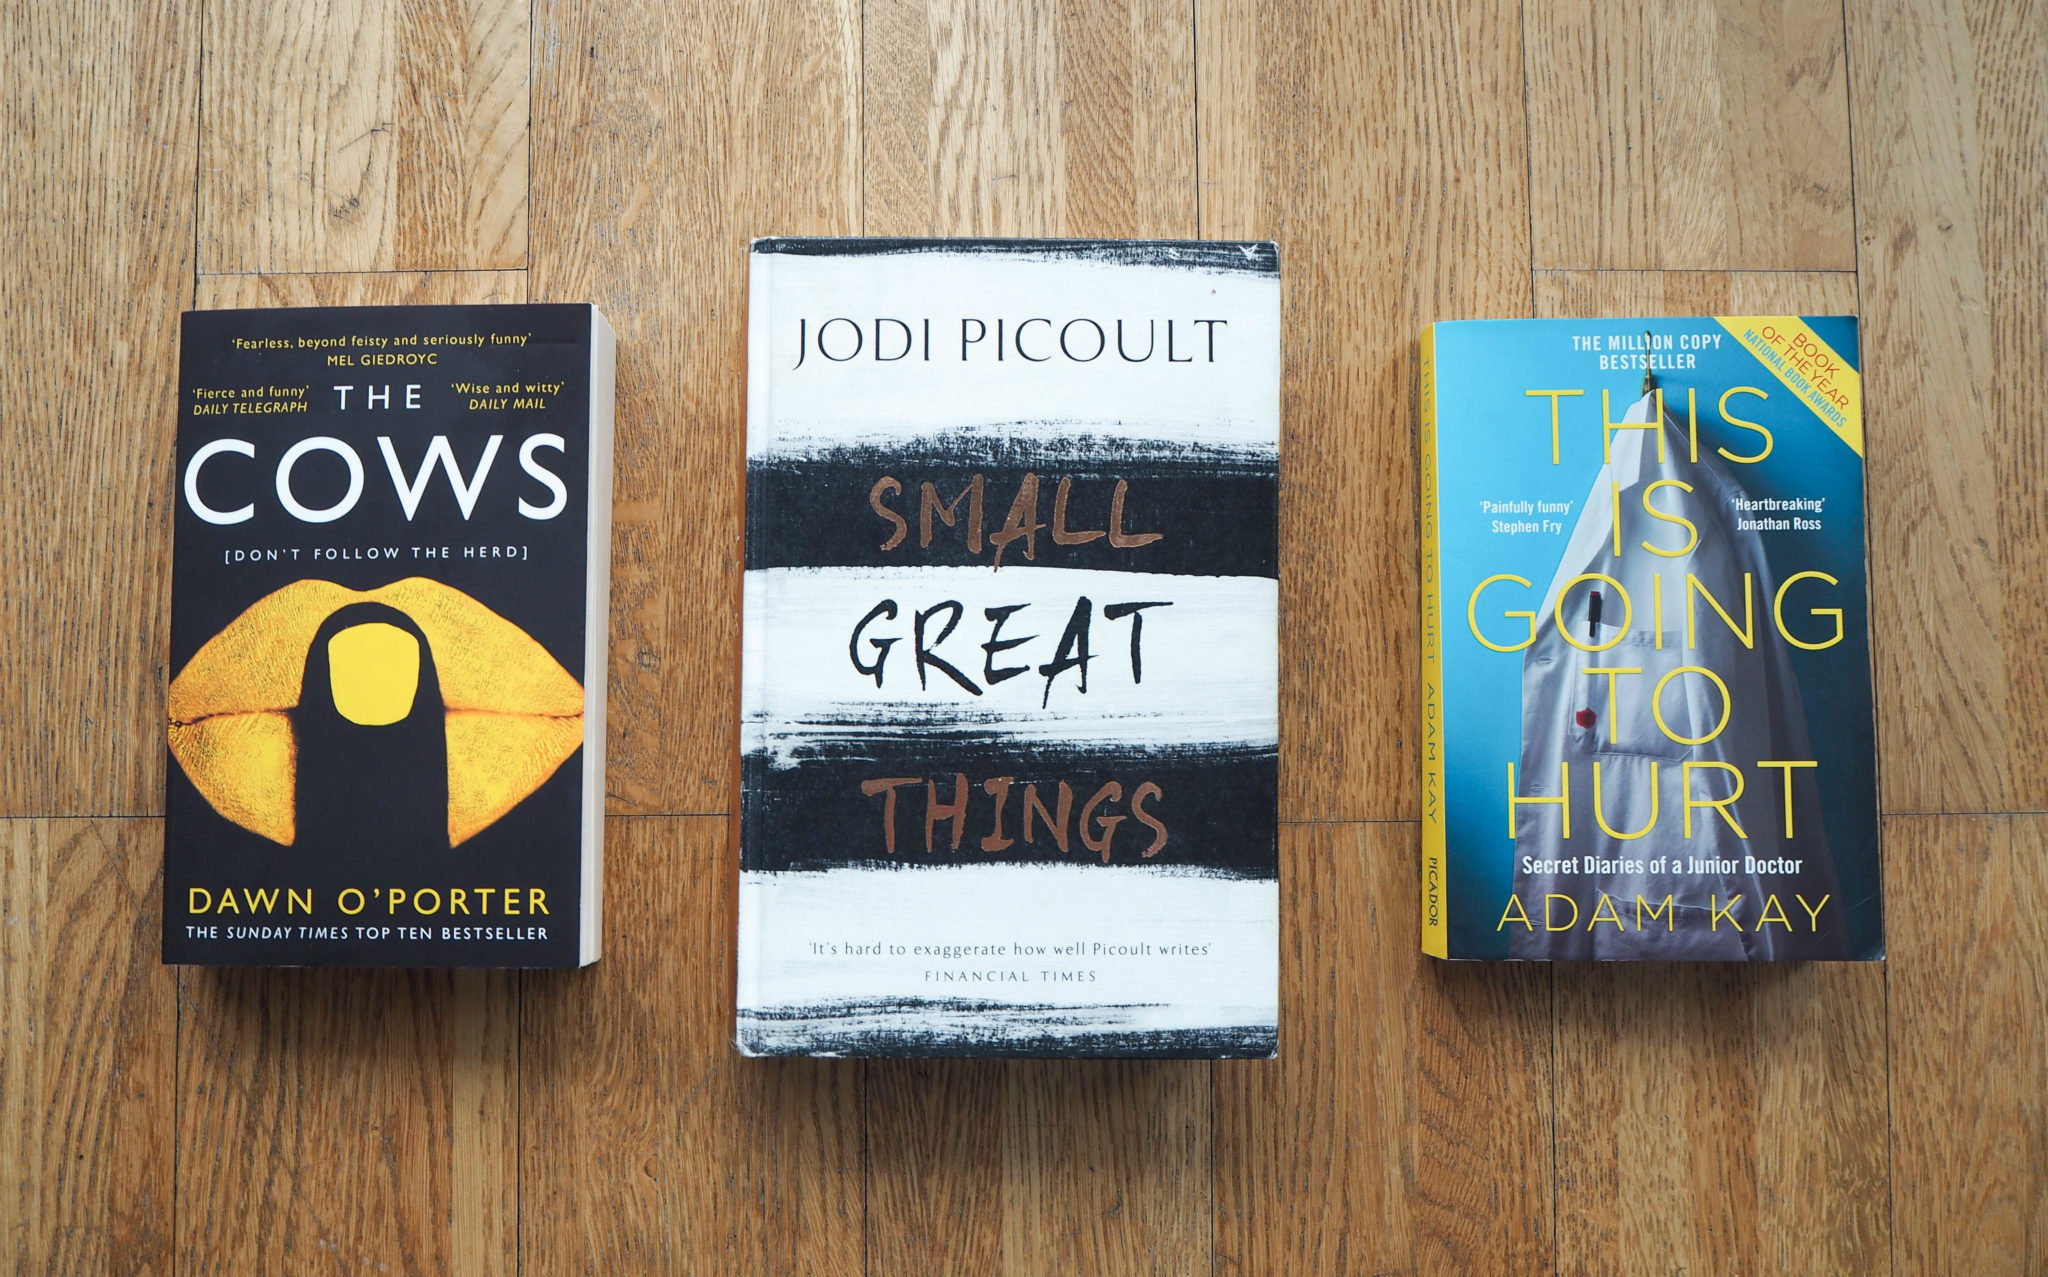 Lockdown Reading The Cows Dawn O'Porter Jodi Picoult Small Great Things This is Going to Hurt Adam Kay Lockdown Reading list